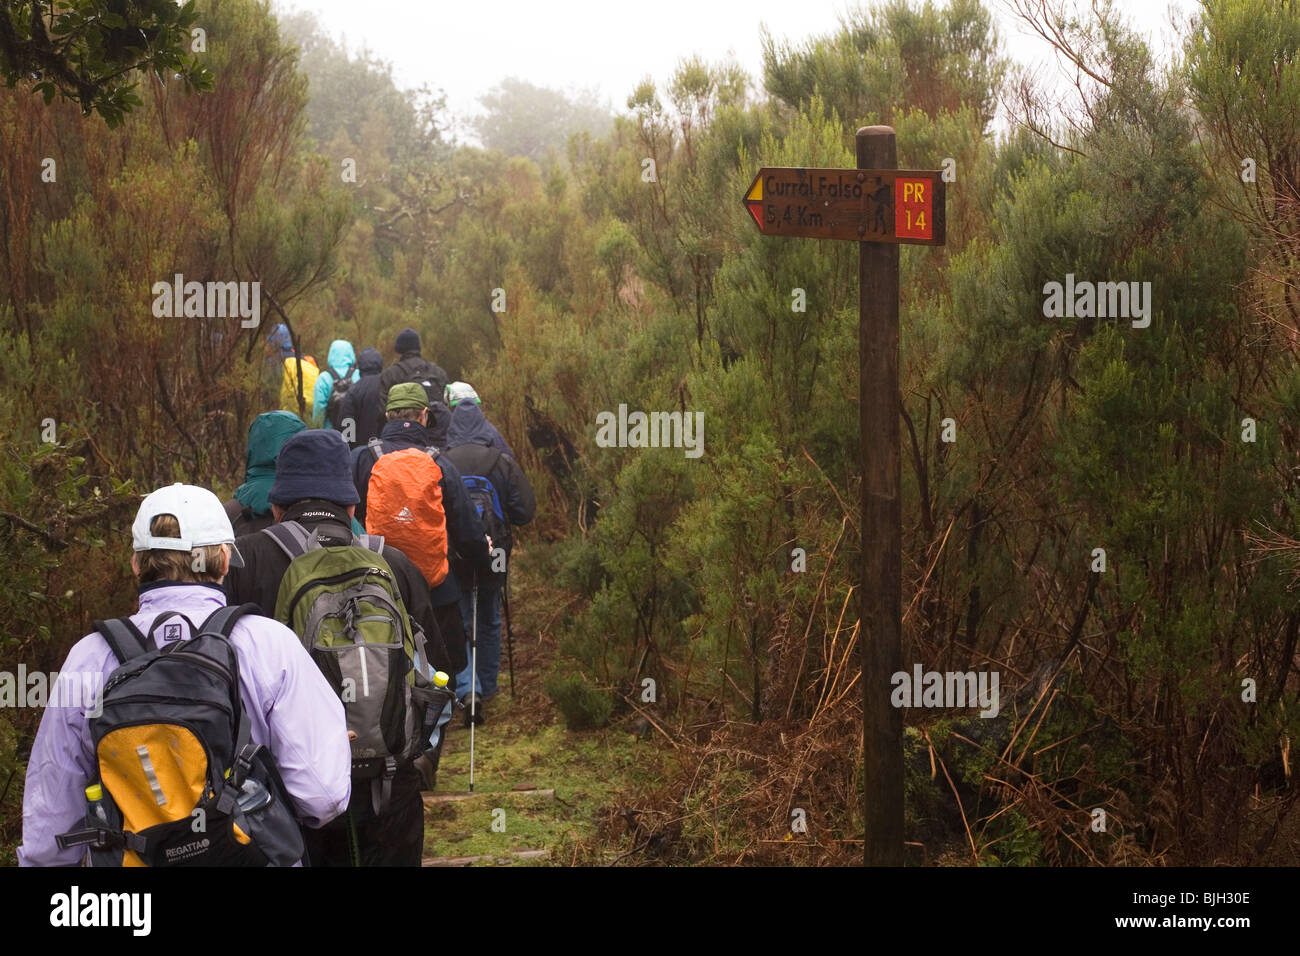 A group of walkers takes part in the Madeira Islands Walking Festival of 2010. - Stock Image